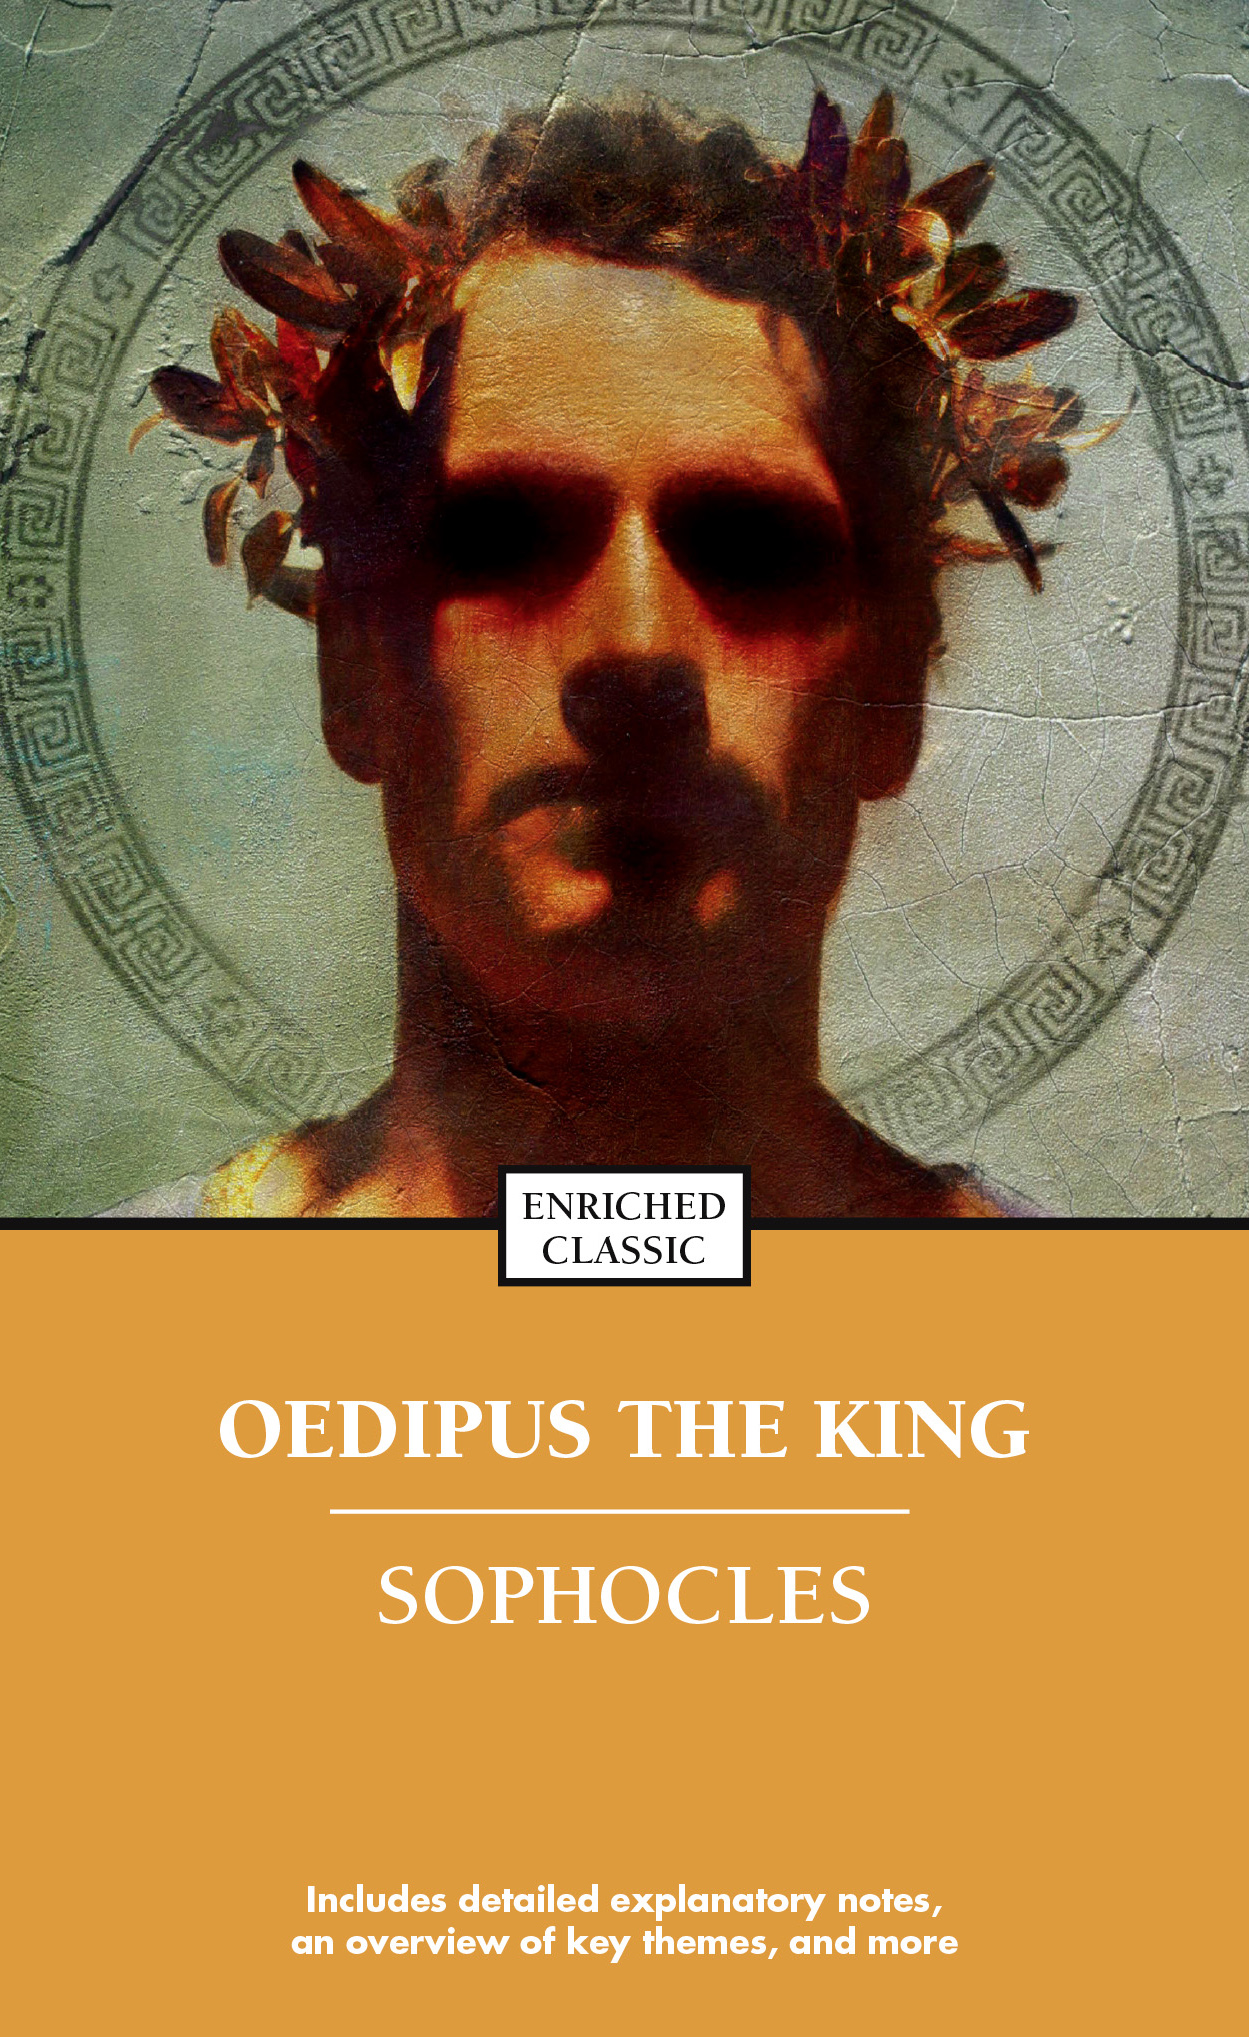 oedipus downfall Free study guides and book notes including comprehensive chapter analysis, complete summary analysis, author biography information, character profiles, theme analysis, metaphor analysis, and top ten quotes on classic literature.